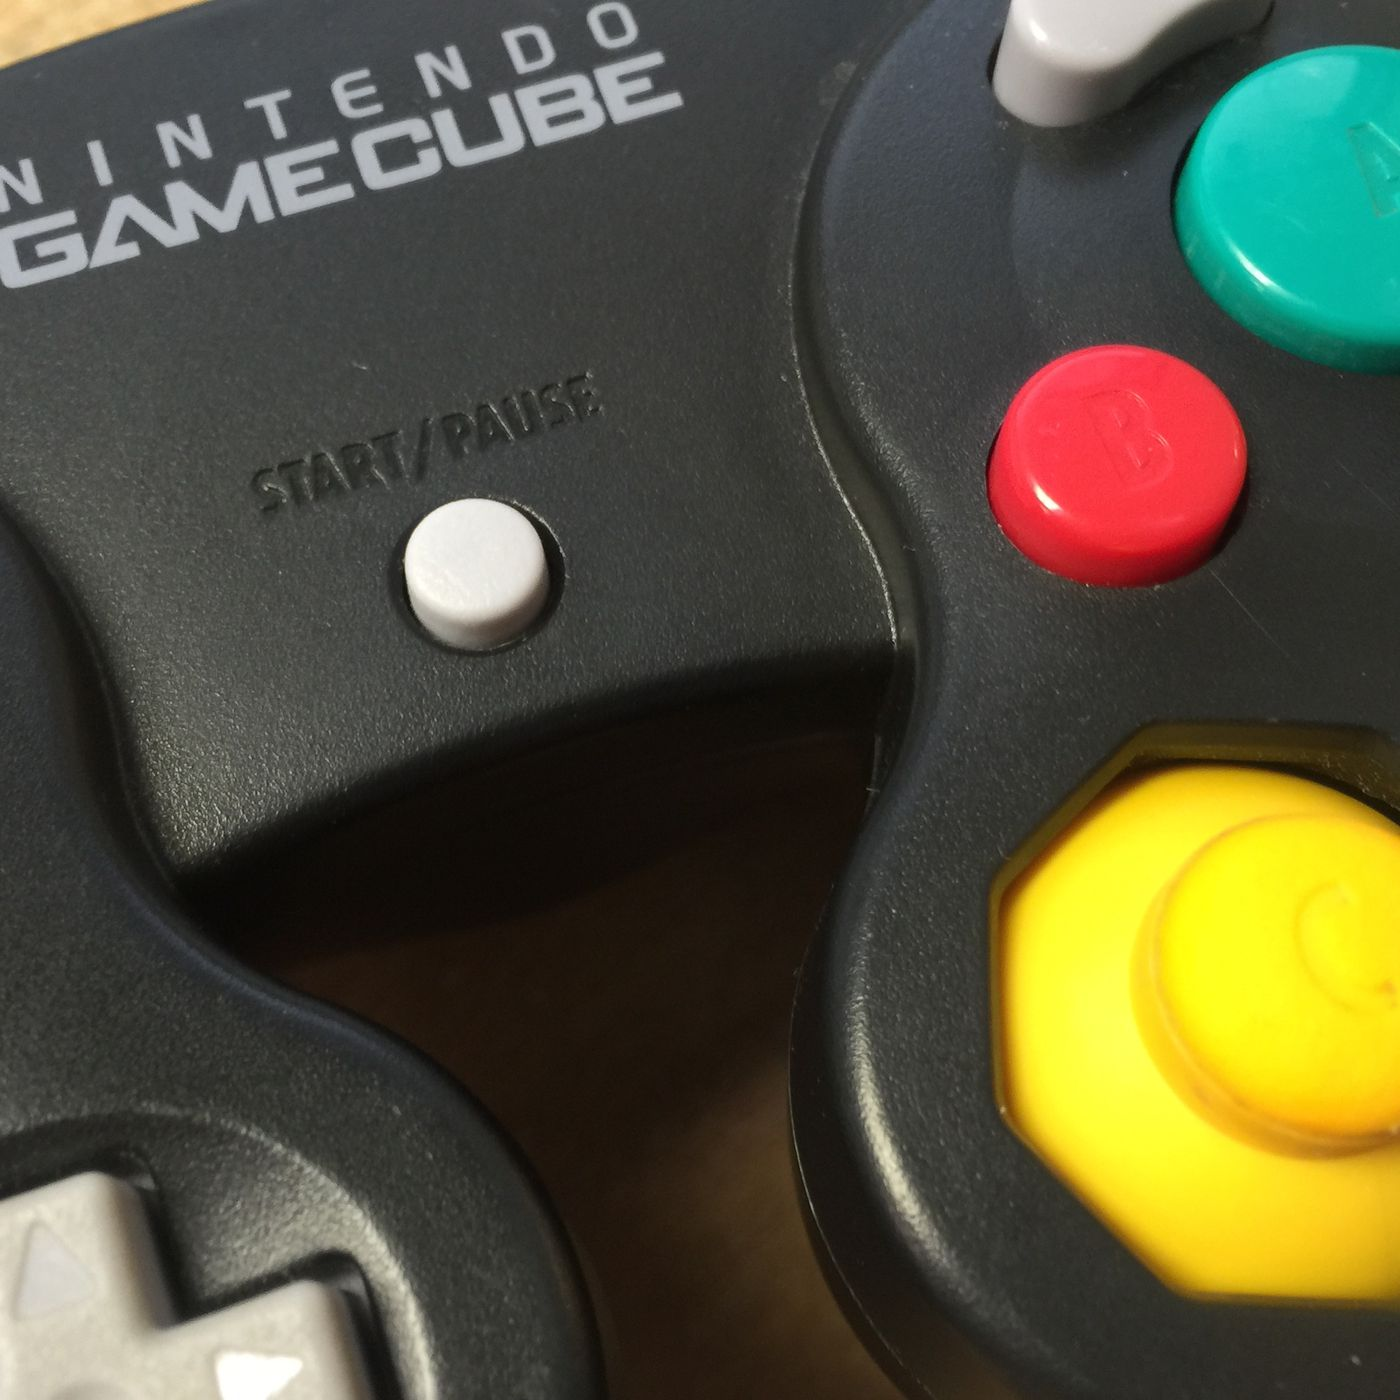 GameCube controller adapter for Mac and PC coming soon for $19 99